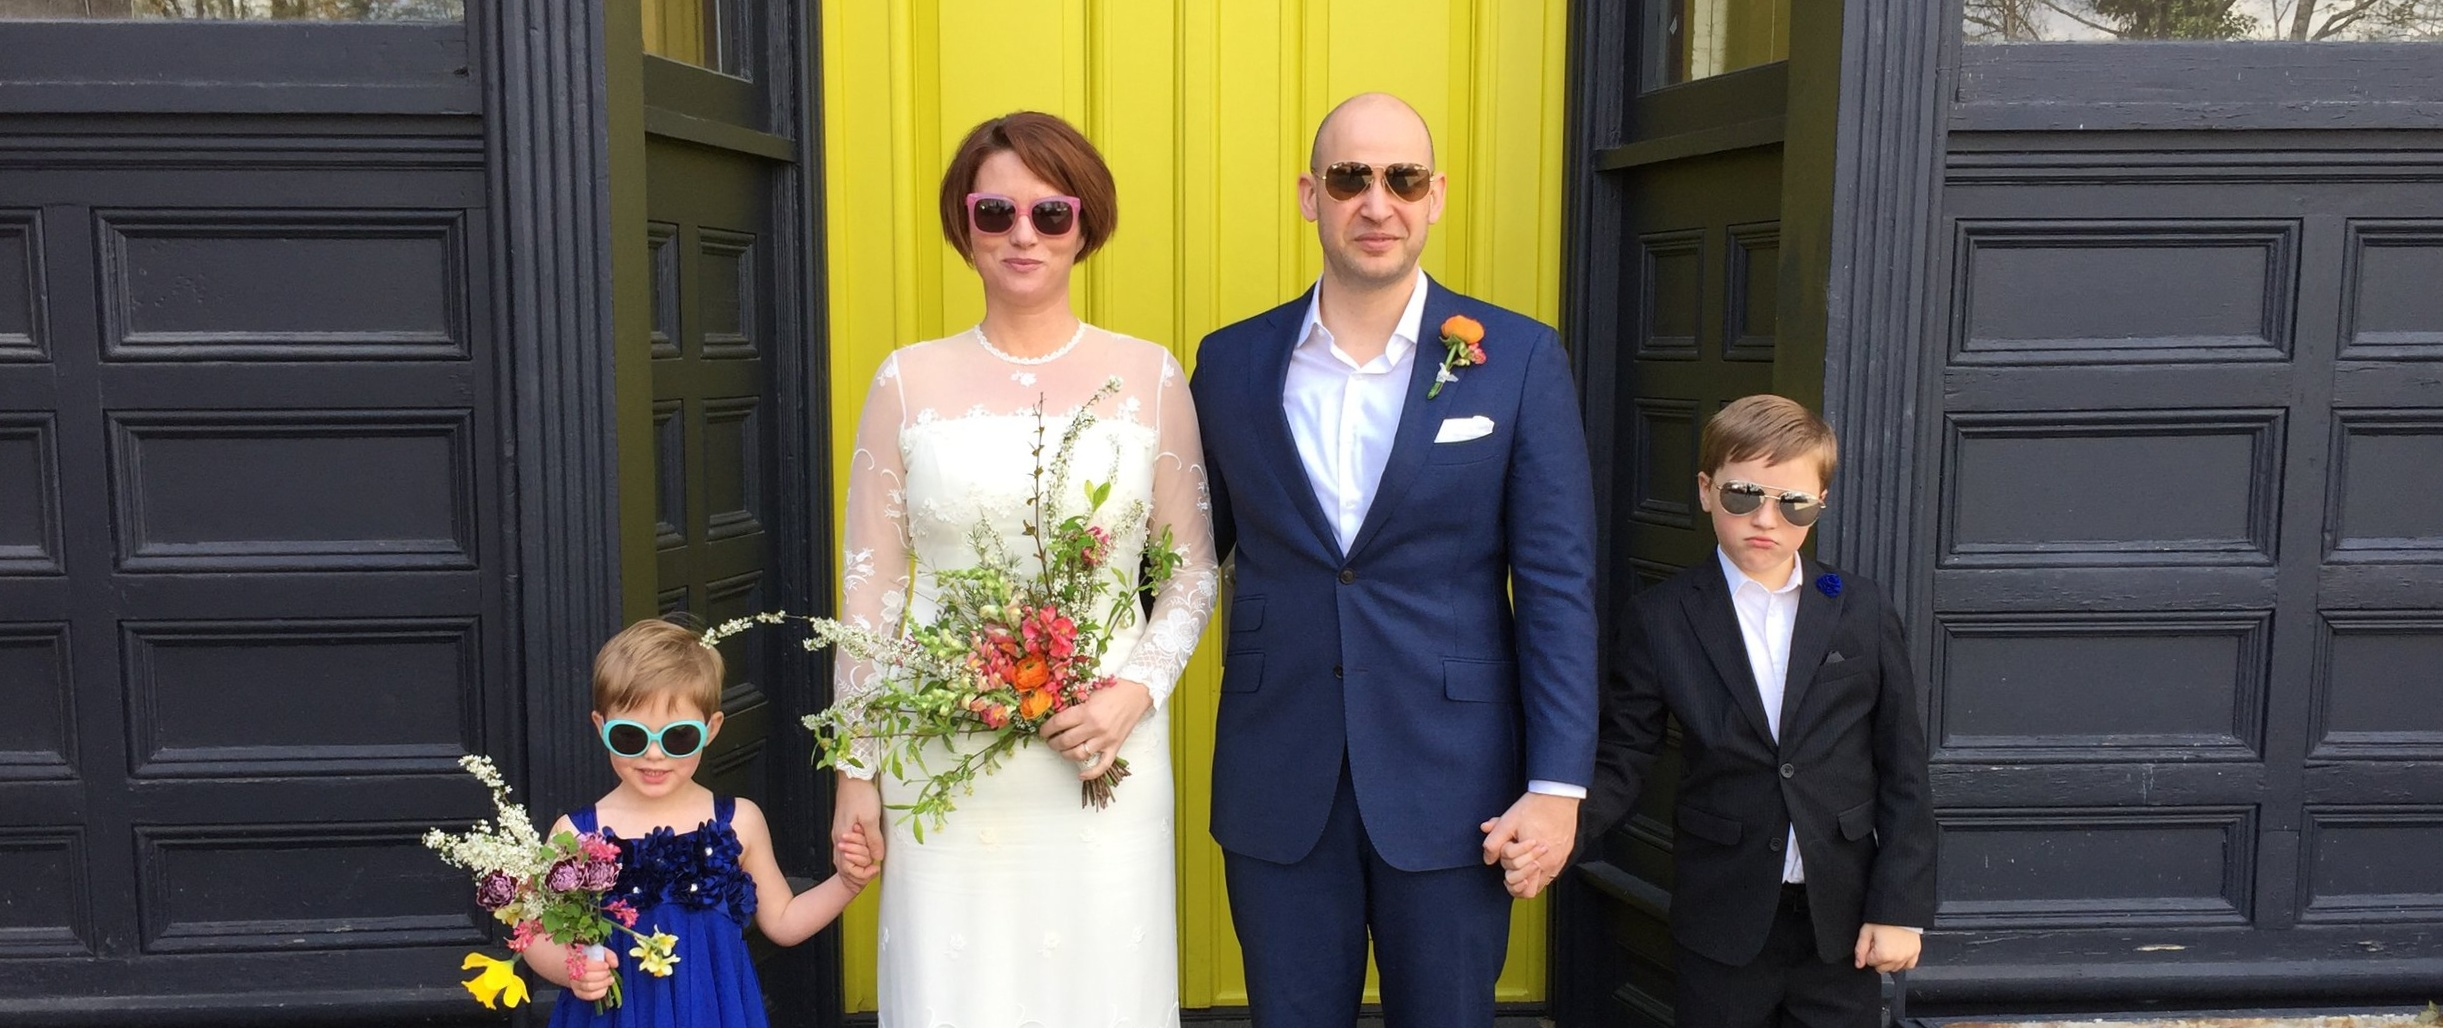 Couple eloped with kids